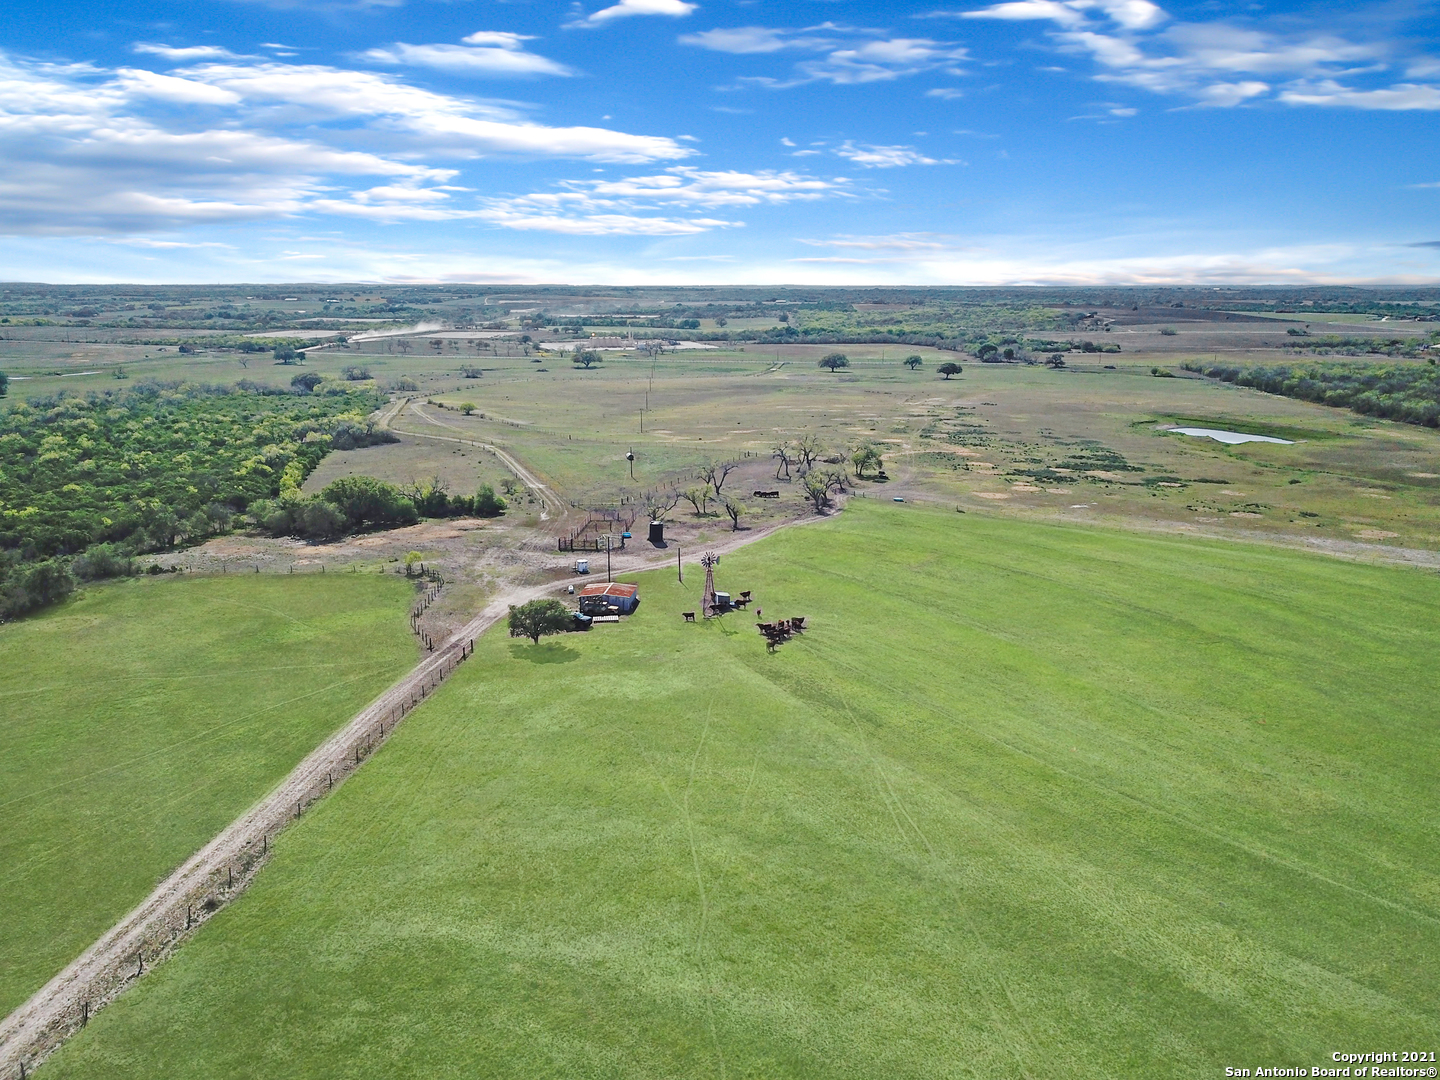 300 acres, minutes from Hobson, rare opportunity to acquire a family legacy ranch that hasn't been on the market in memory. Plenty of private building sites to build on, rolling hills and views. 200 acres of worked pastures for cattle, roughly 100 acres of natural vegetation to take advantage of hunting, large oak trees, makes this a diverse ranch!  IMPROVEMENTS  Water well, electricity drop, septic, barn, former home site.   All new or well maintained parameter fencing or cross fencing, active cattle ranch.   200 acres of worked pasture land.  1/2 Acre stock tank  TOPOGRAPHY   Flat to rolling hills with views.  Roughly 50 acres via west parameter is flood plain.  MINERALS  Surface rights only available.  No surface activity besides pipeline (8 acres) in northern portion of the ranch.  WILDLIFE  Whitetail deer and feral hogs